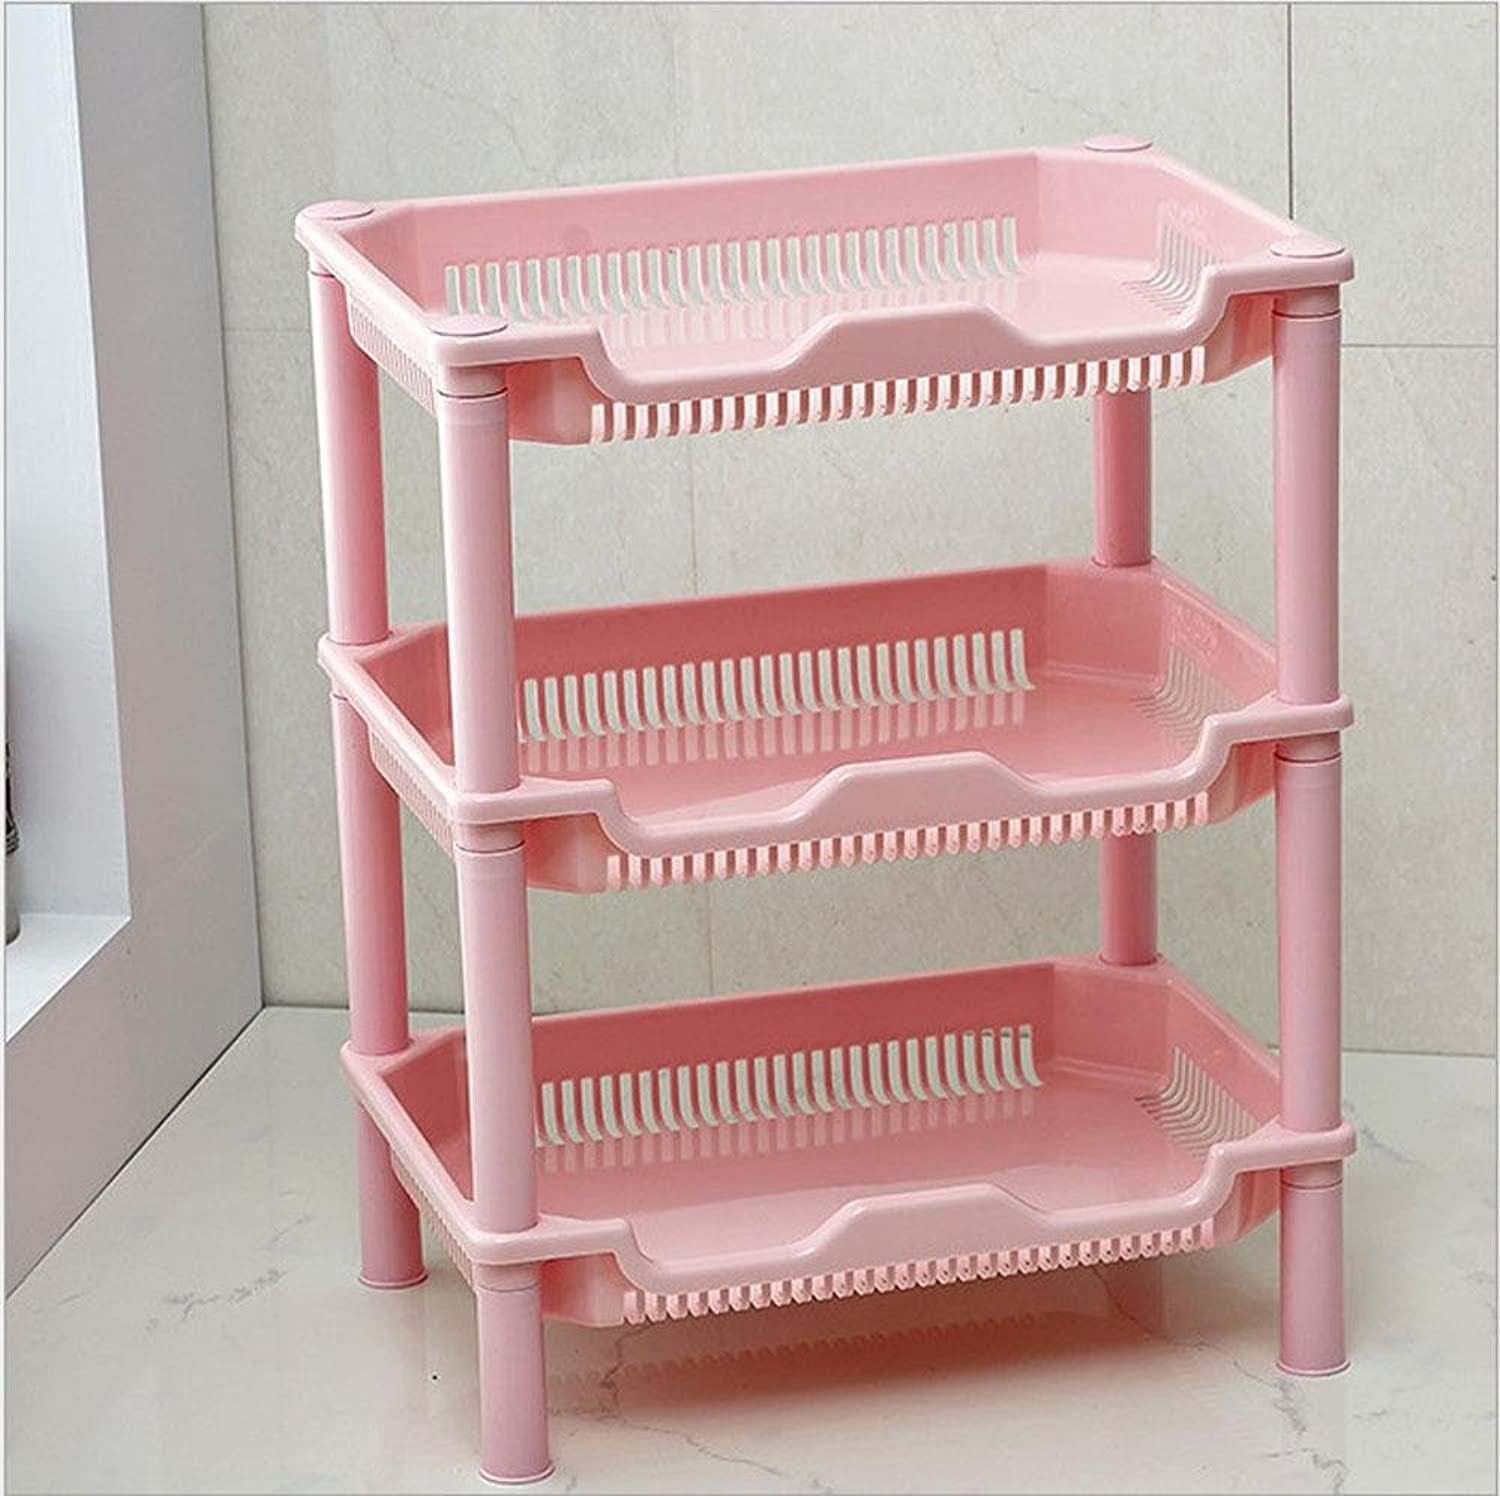 SSBY Fashion square bathroom shelf, literary stuff plastic storage rack, three tier shelf in the kitchen, three color optional , Pink